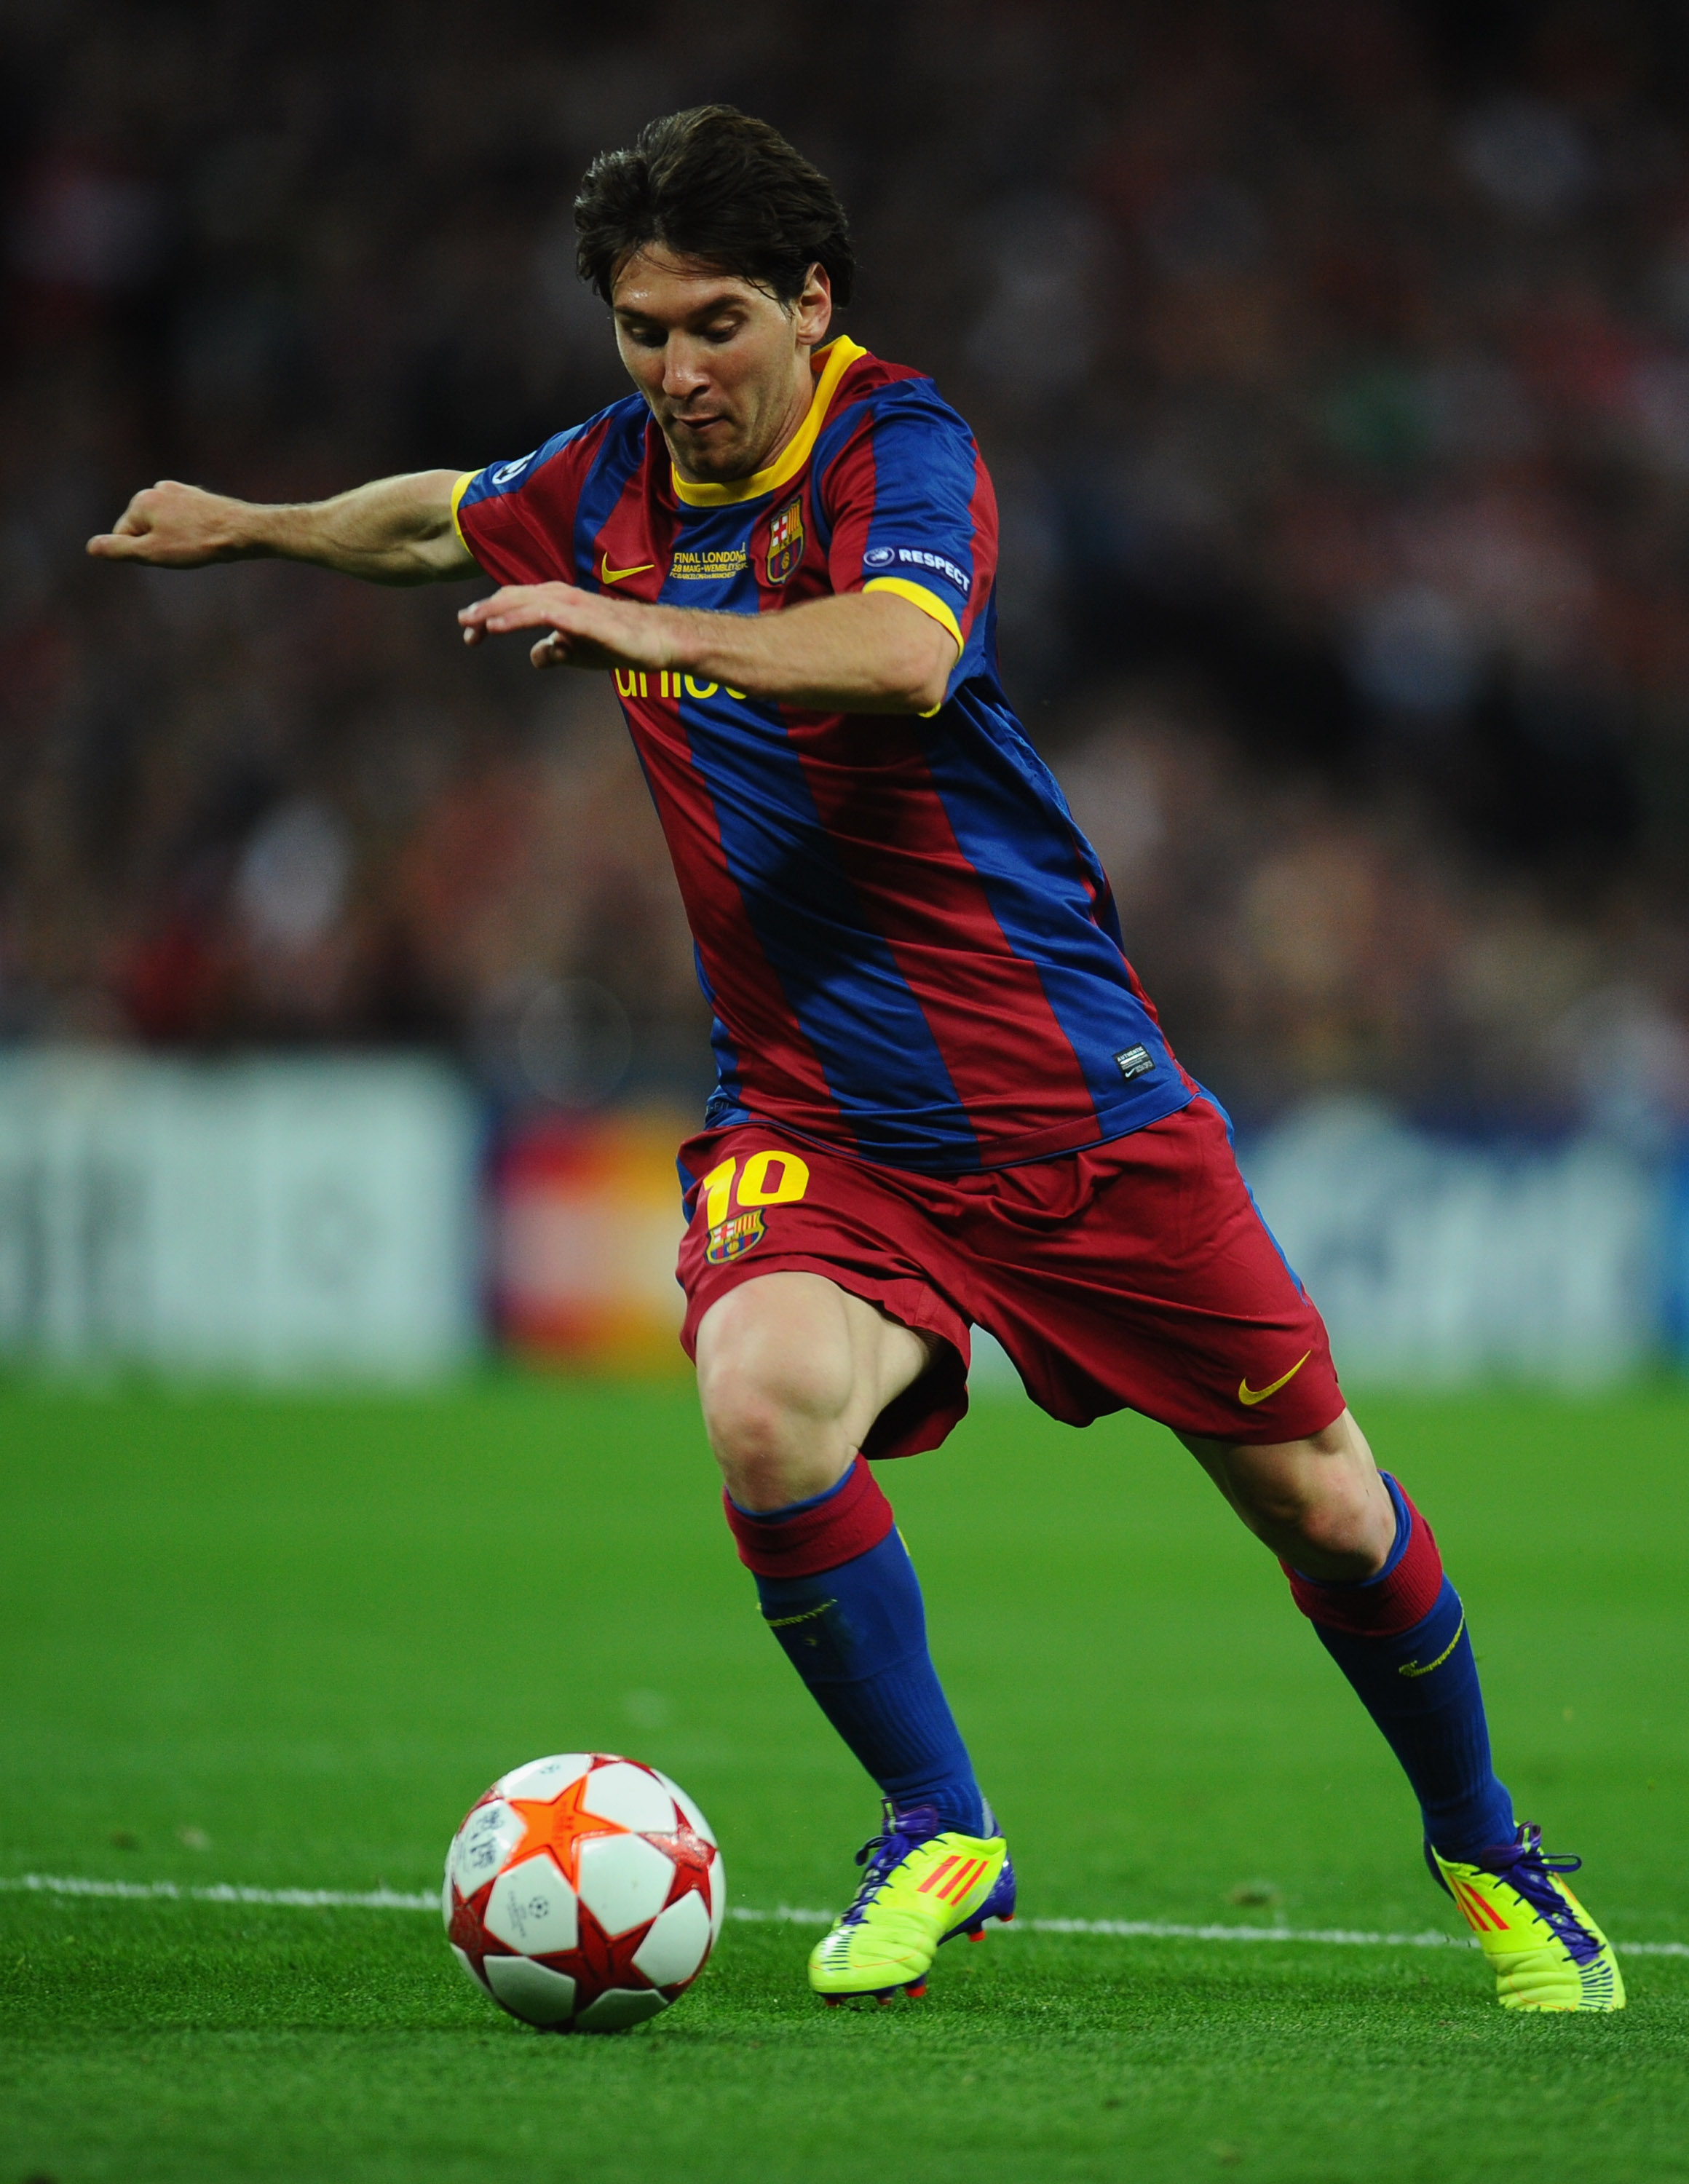 LONDON, ENGLAND - MAY 28:  Lionel Messi of FC Barcelona in action during the UEFA Champions League final between FC Barcelona and Manchester United FC at Wembley Stadium on May 28, 2011 in London, England.  (Photo by Clive Mason/Getty Images)